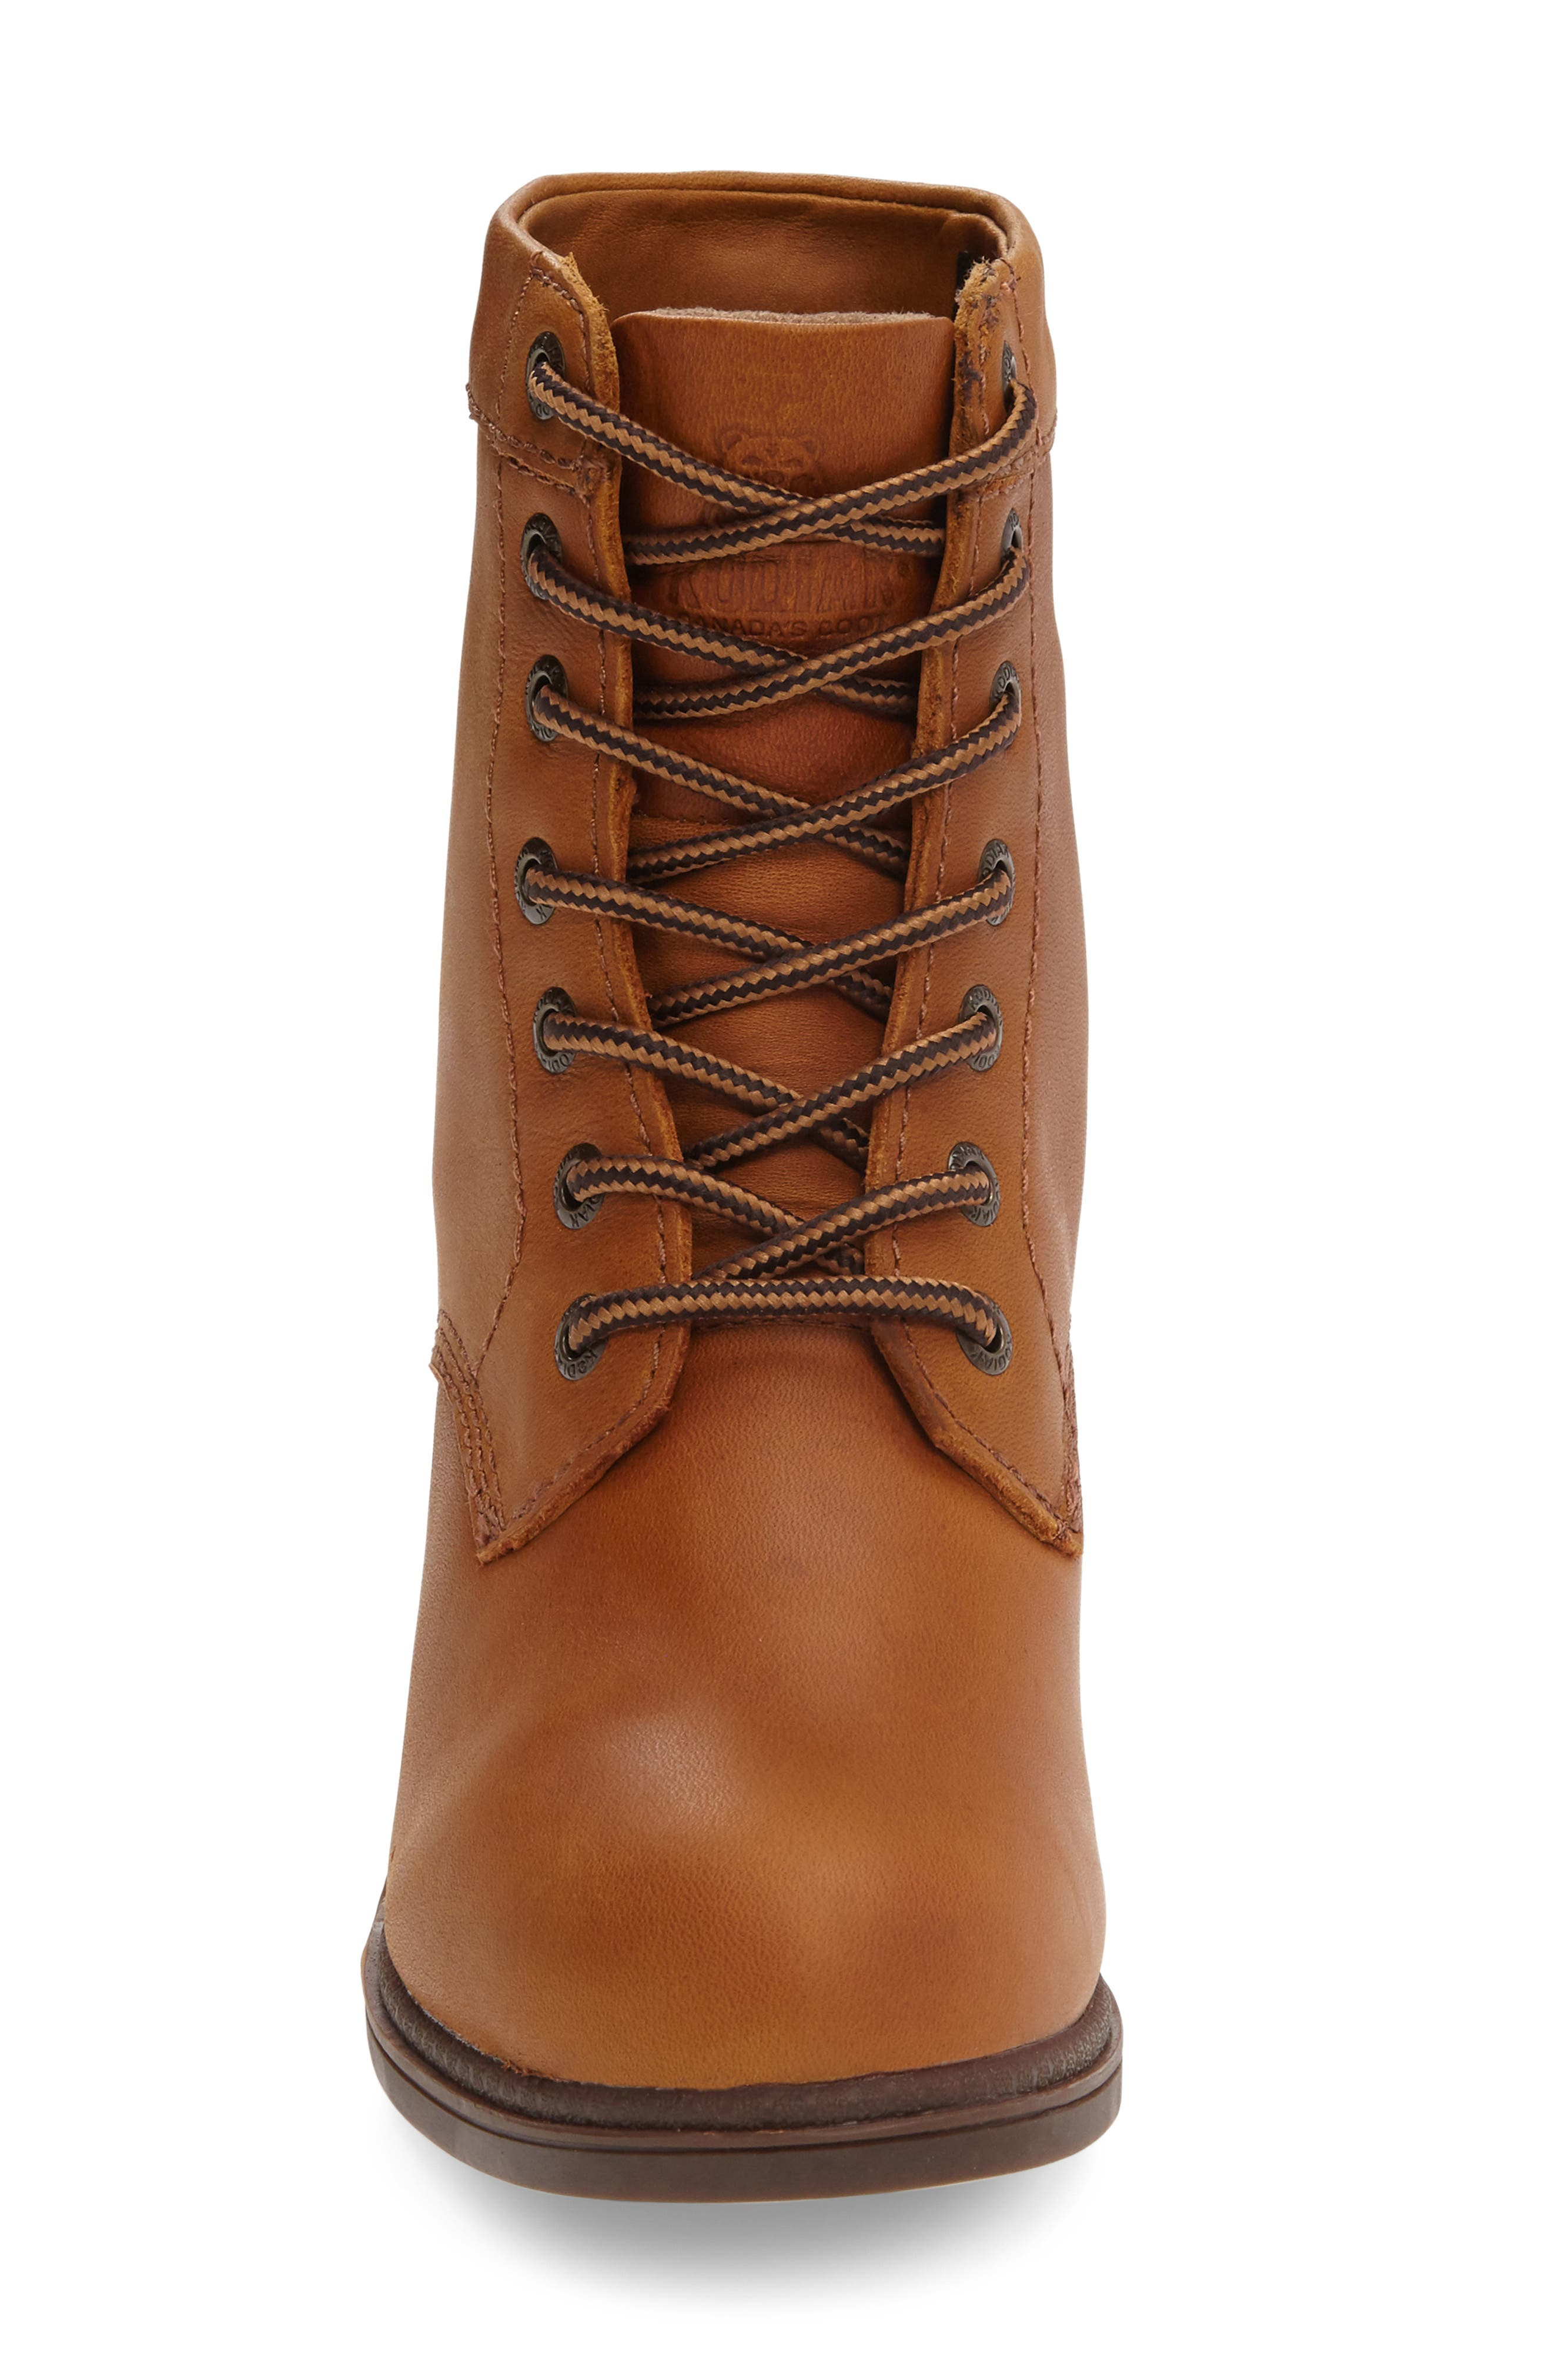 Claire Waterproof Bootie,                             Alternate thumbnail 3, color,                             Caramel Leather